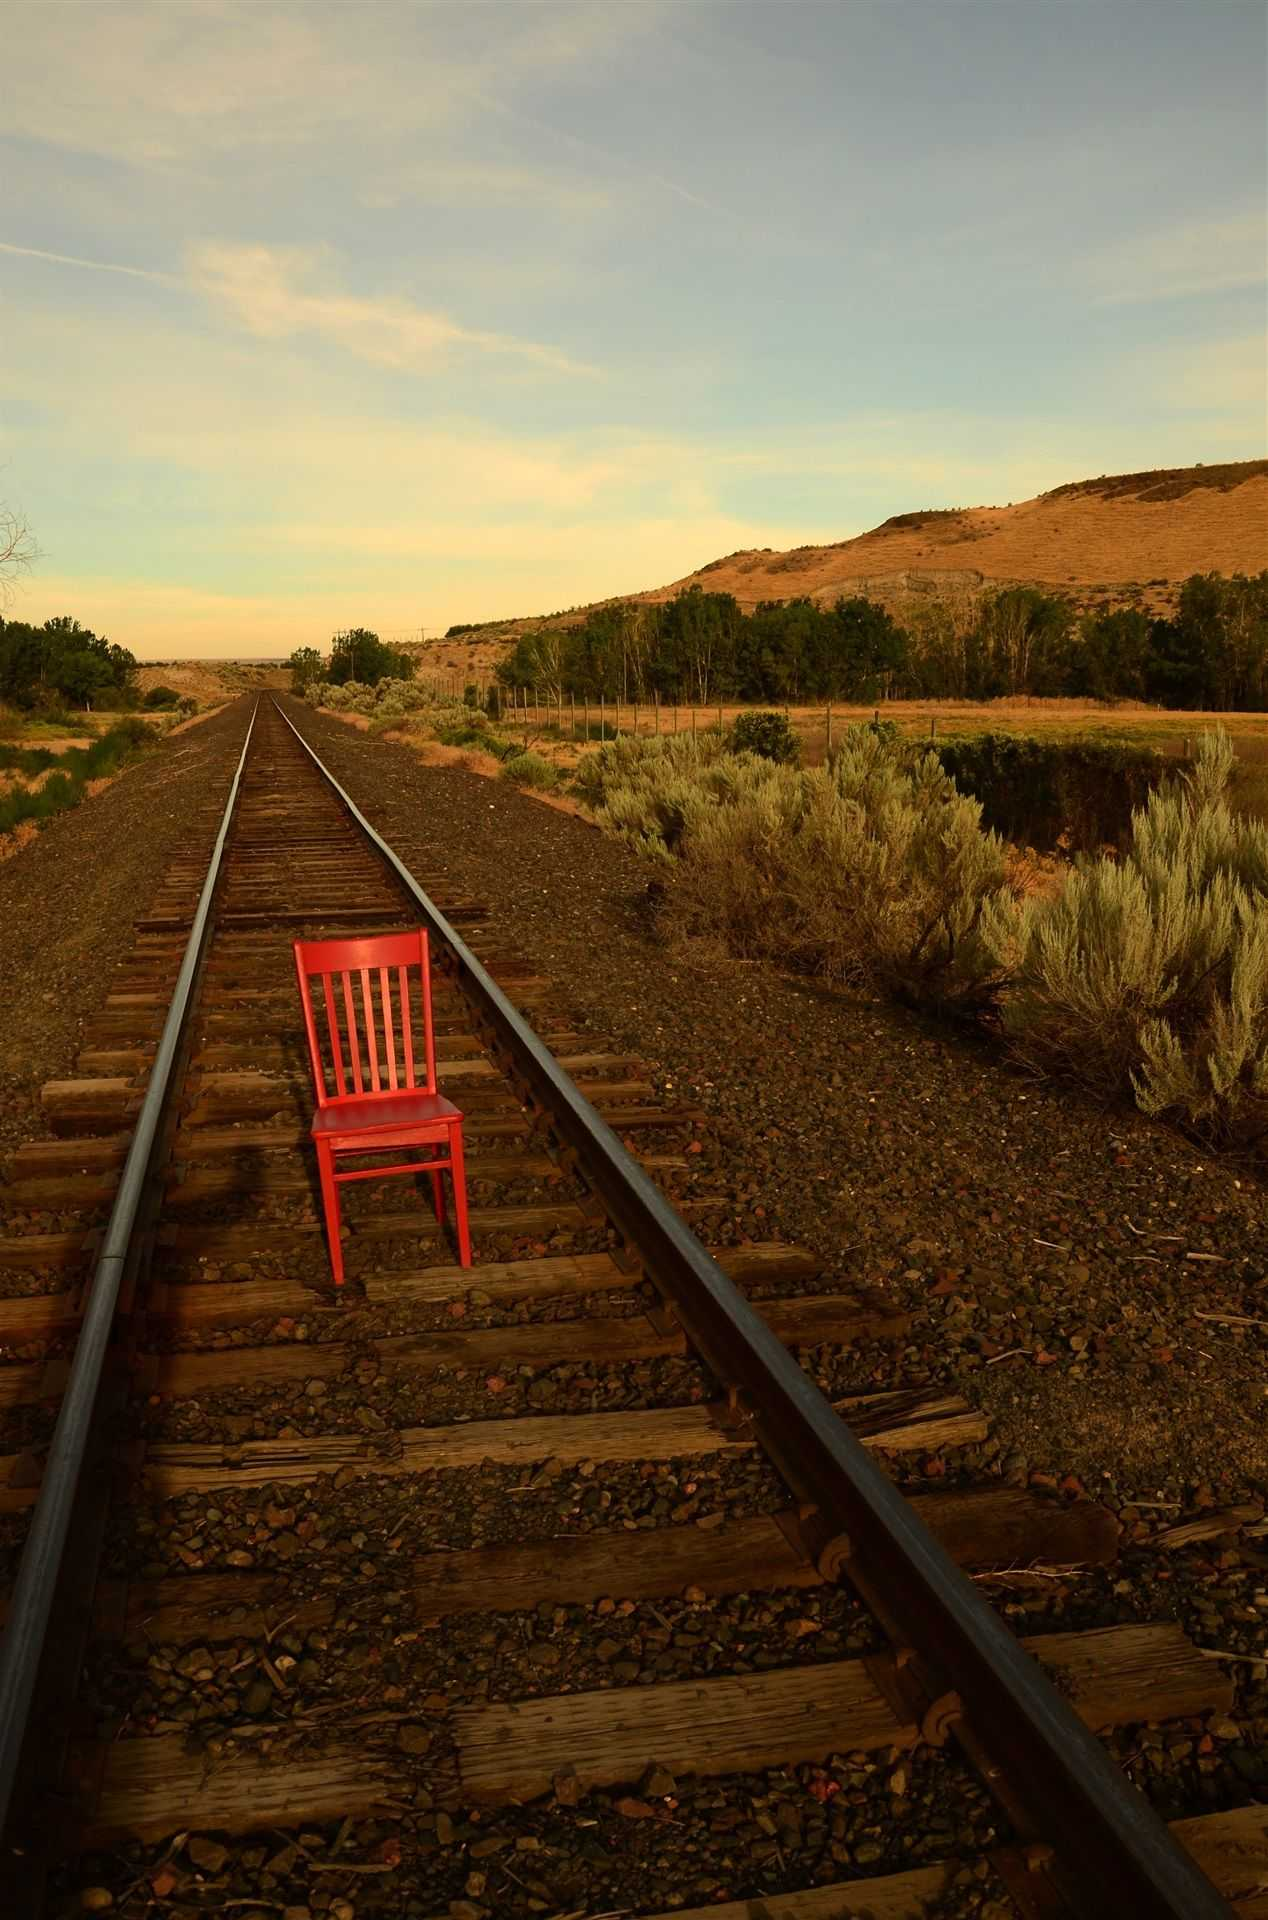 Red chair put on a railroad tie in the middle of the tracks as they go off into the distance